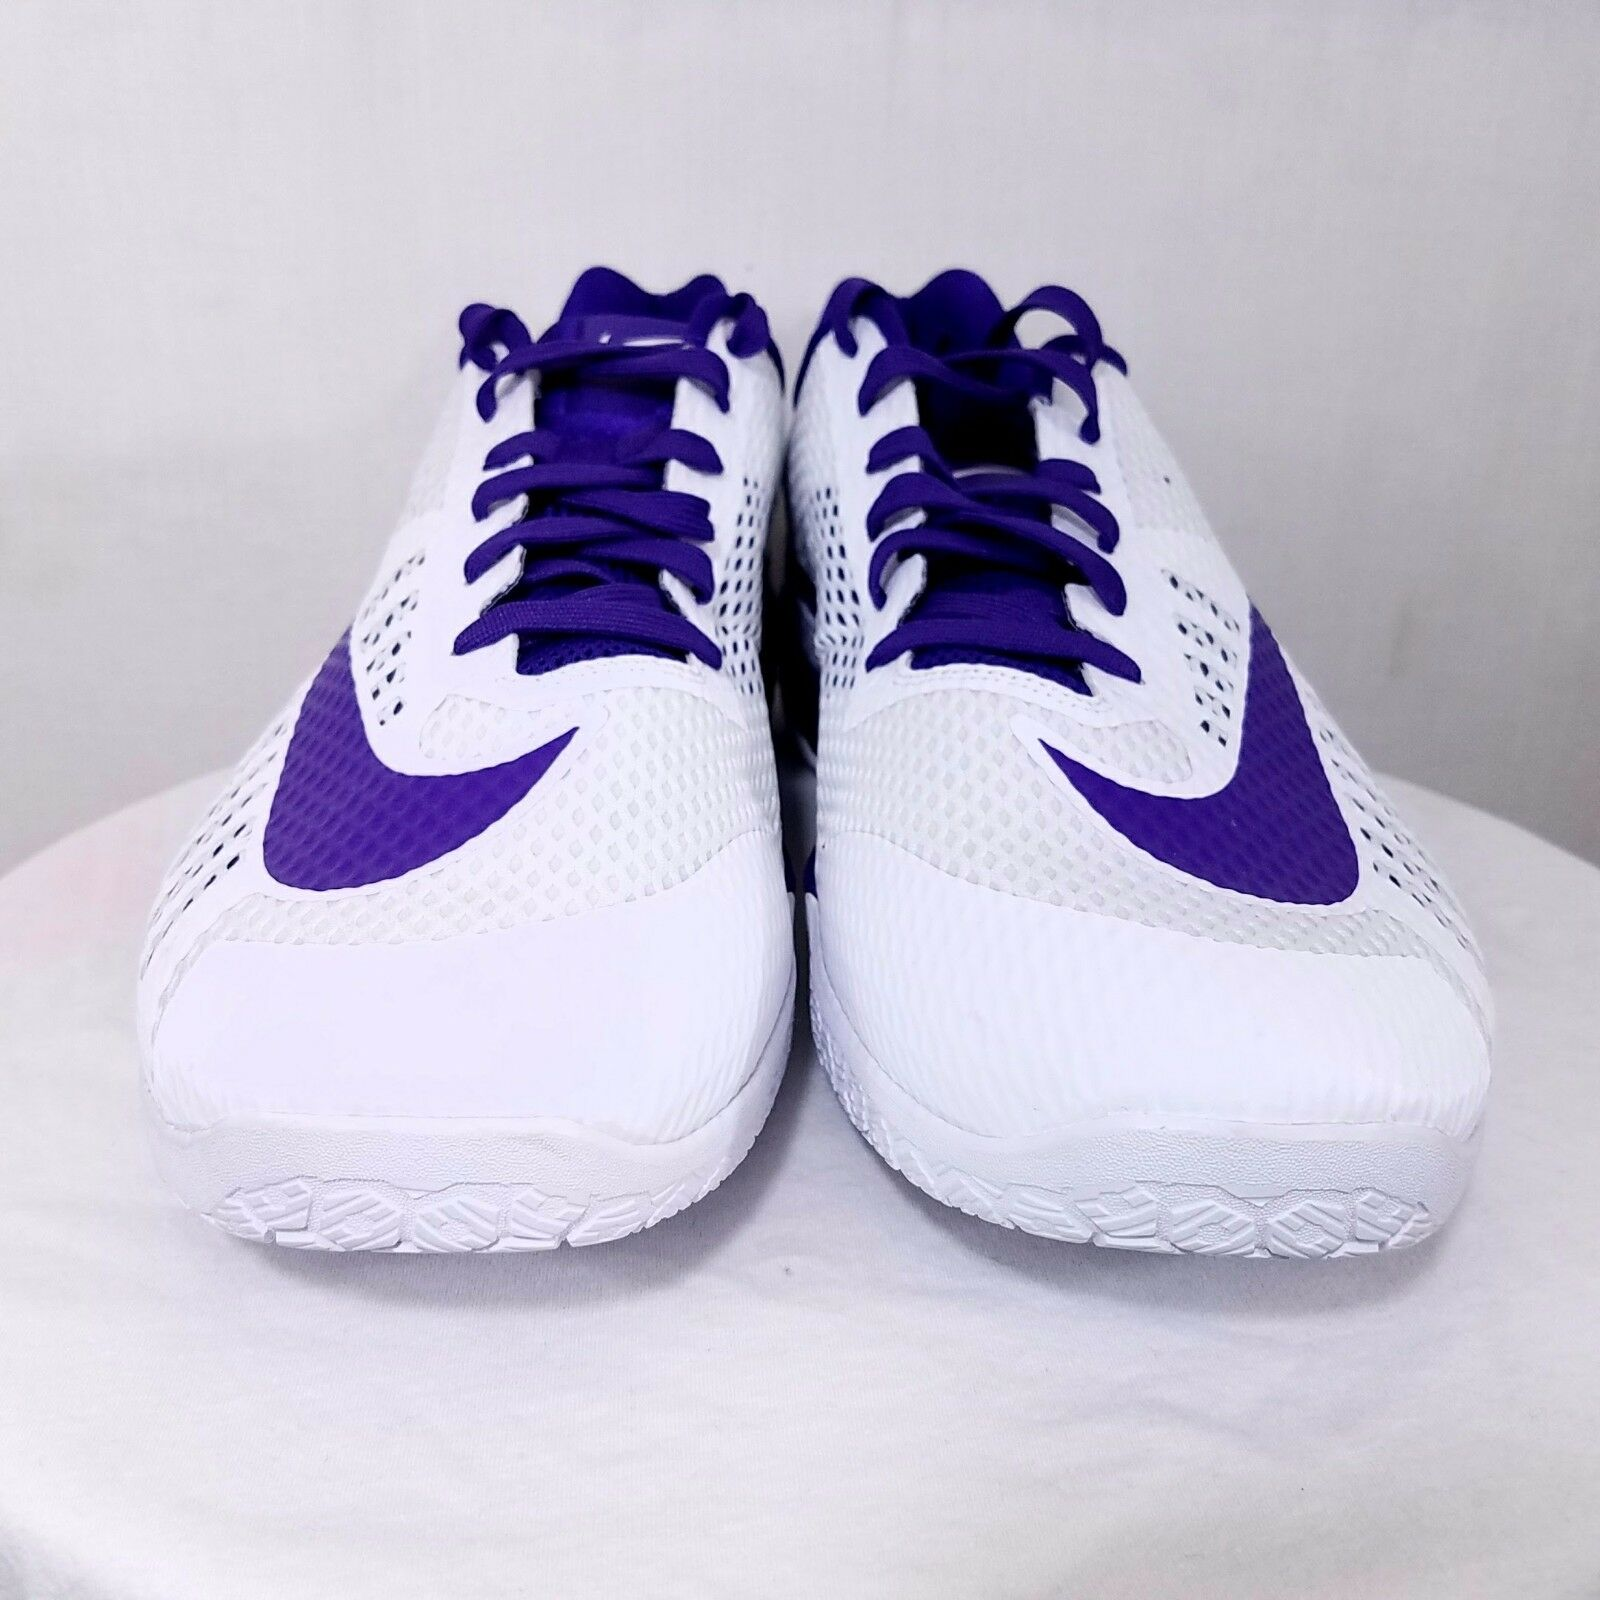 Nike Hyperlive TB homme Basketball chaussures  Baskets 834488 150 faible  chaussures Violet  US 17.5 6f1722